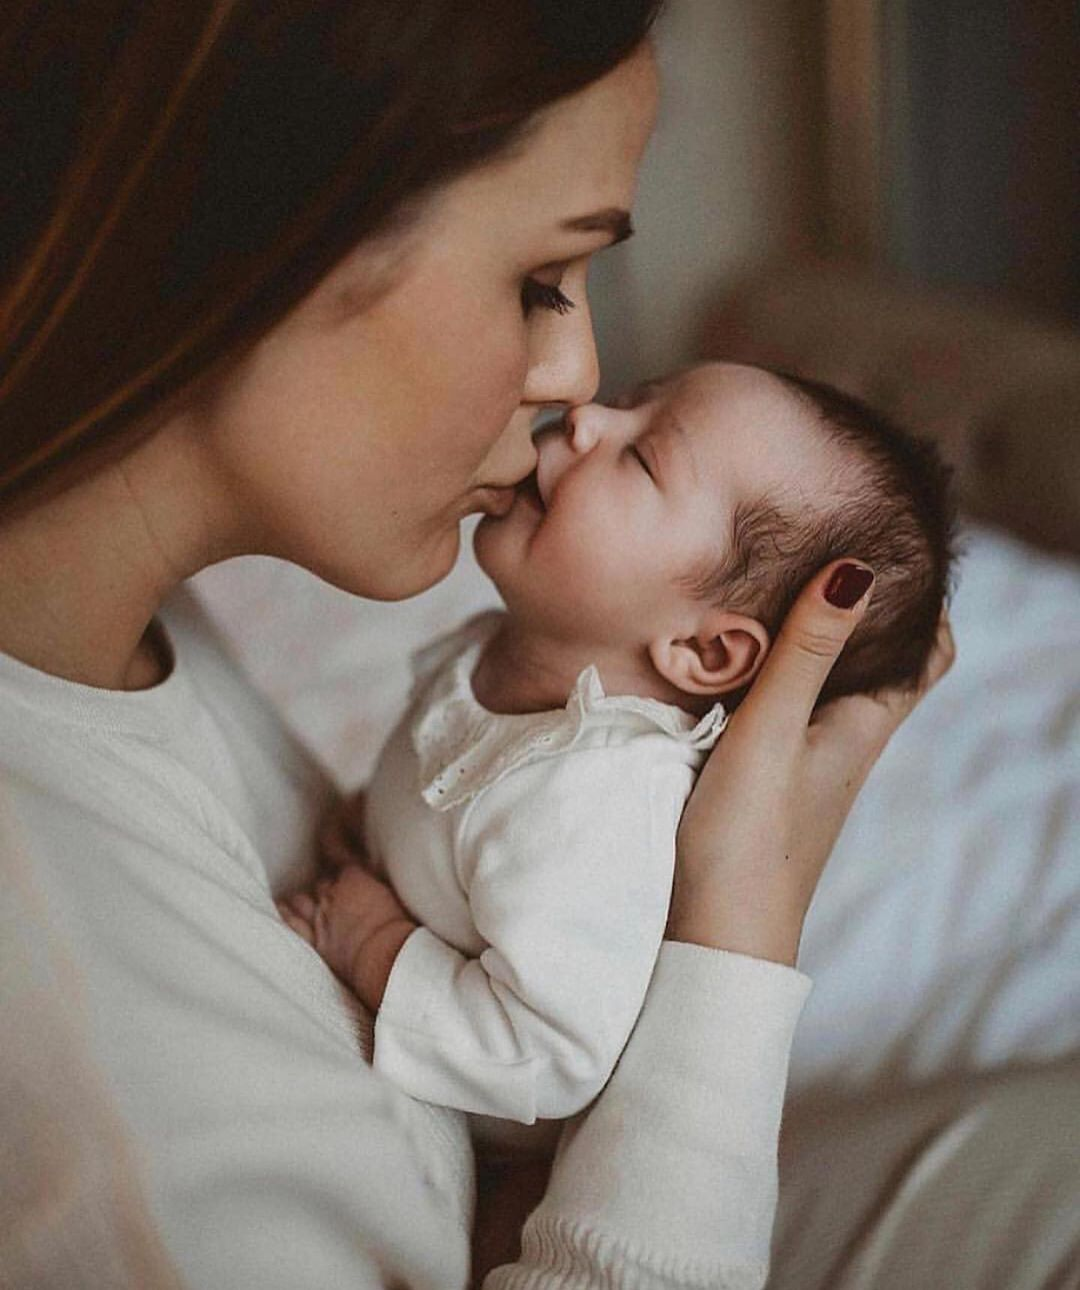 Pin By Maree Frances Kelly On One Born Every Minute A Family Is Made Newborn Baby Photography Newborn Baby Photos Newborn Photoshoot